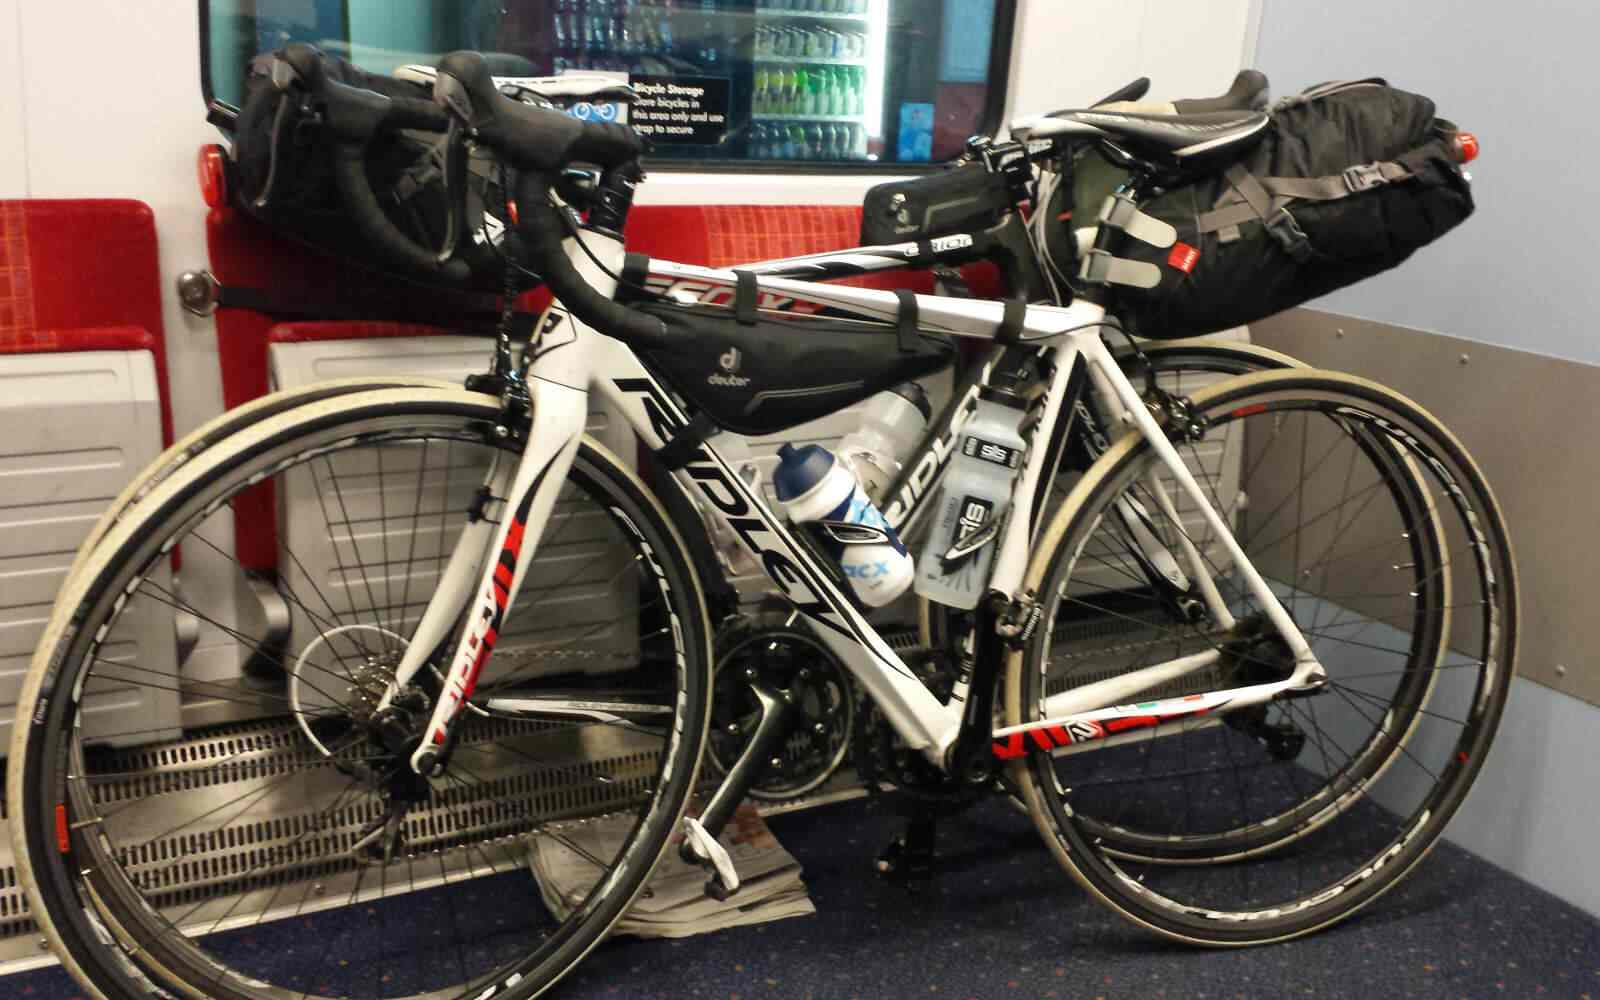 Bikes on the train bikepacking